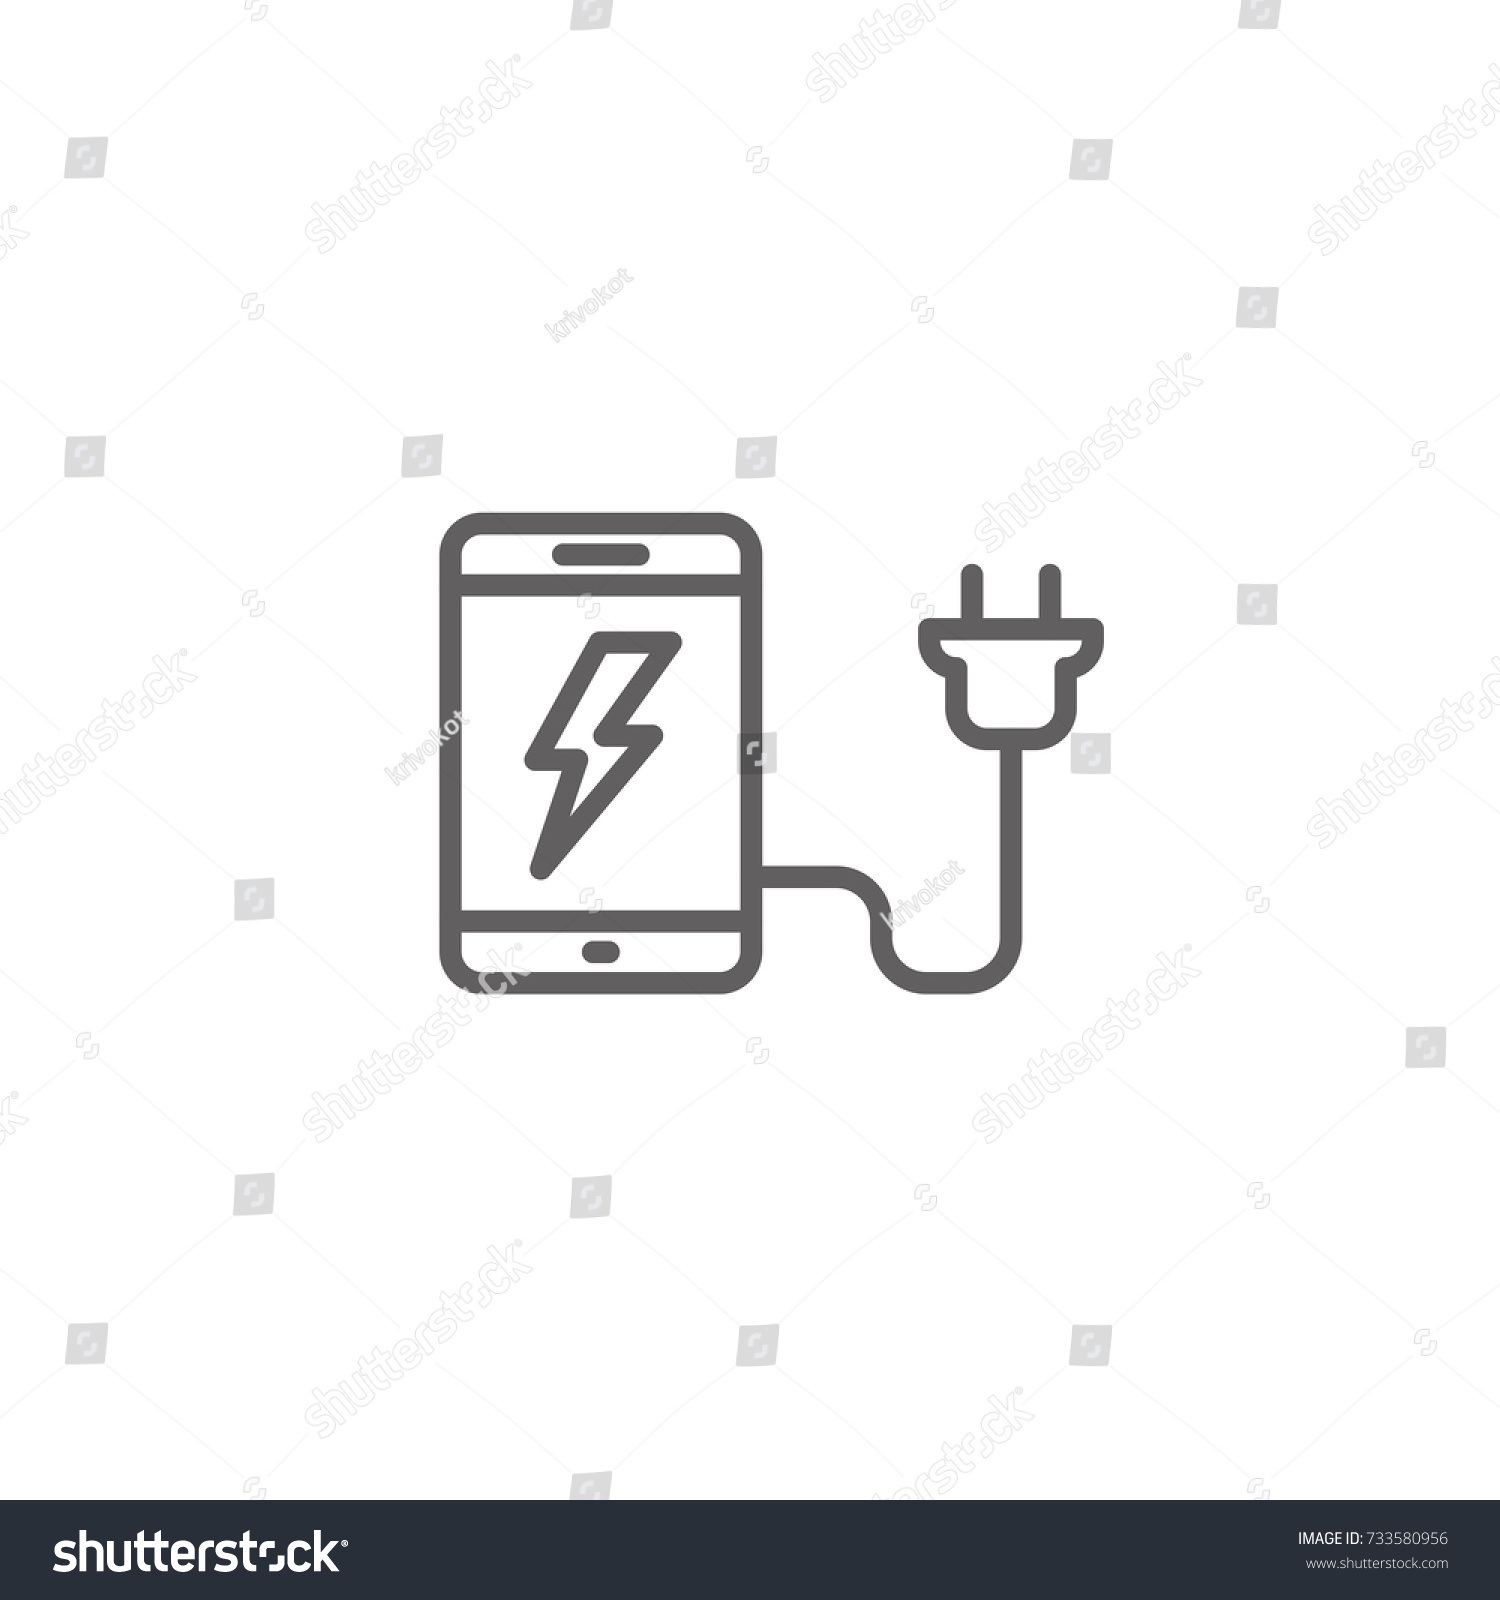 Mobile Telephone Charging Cell Phone Thin Stock Vector 733580956 ...